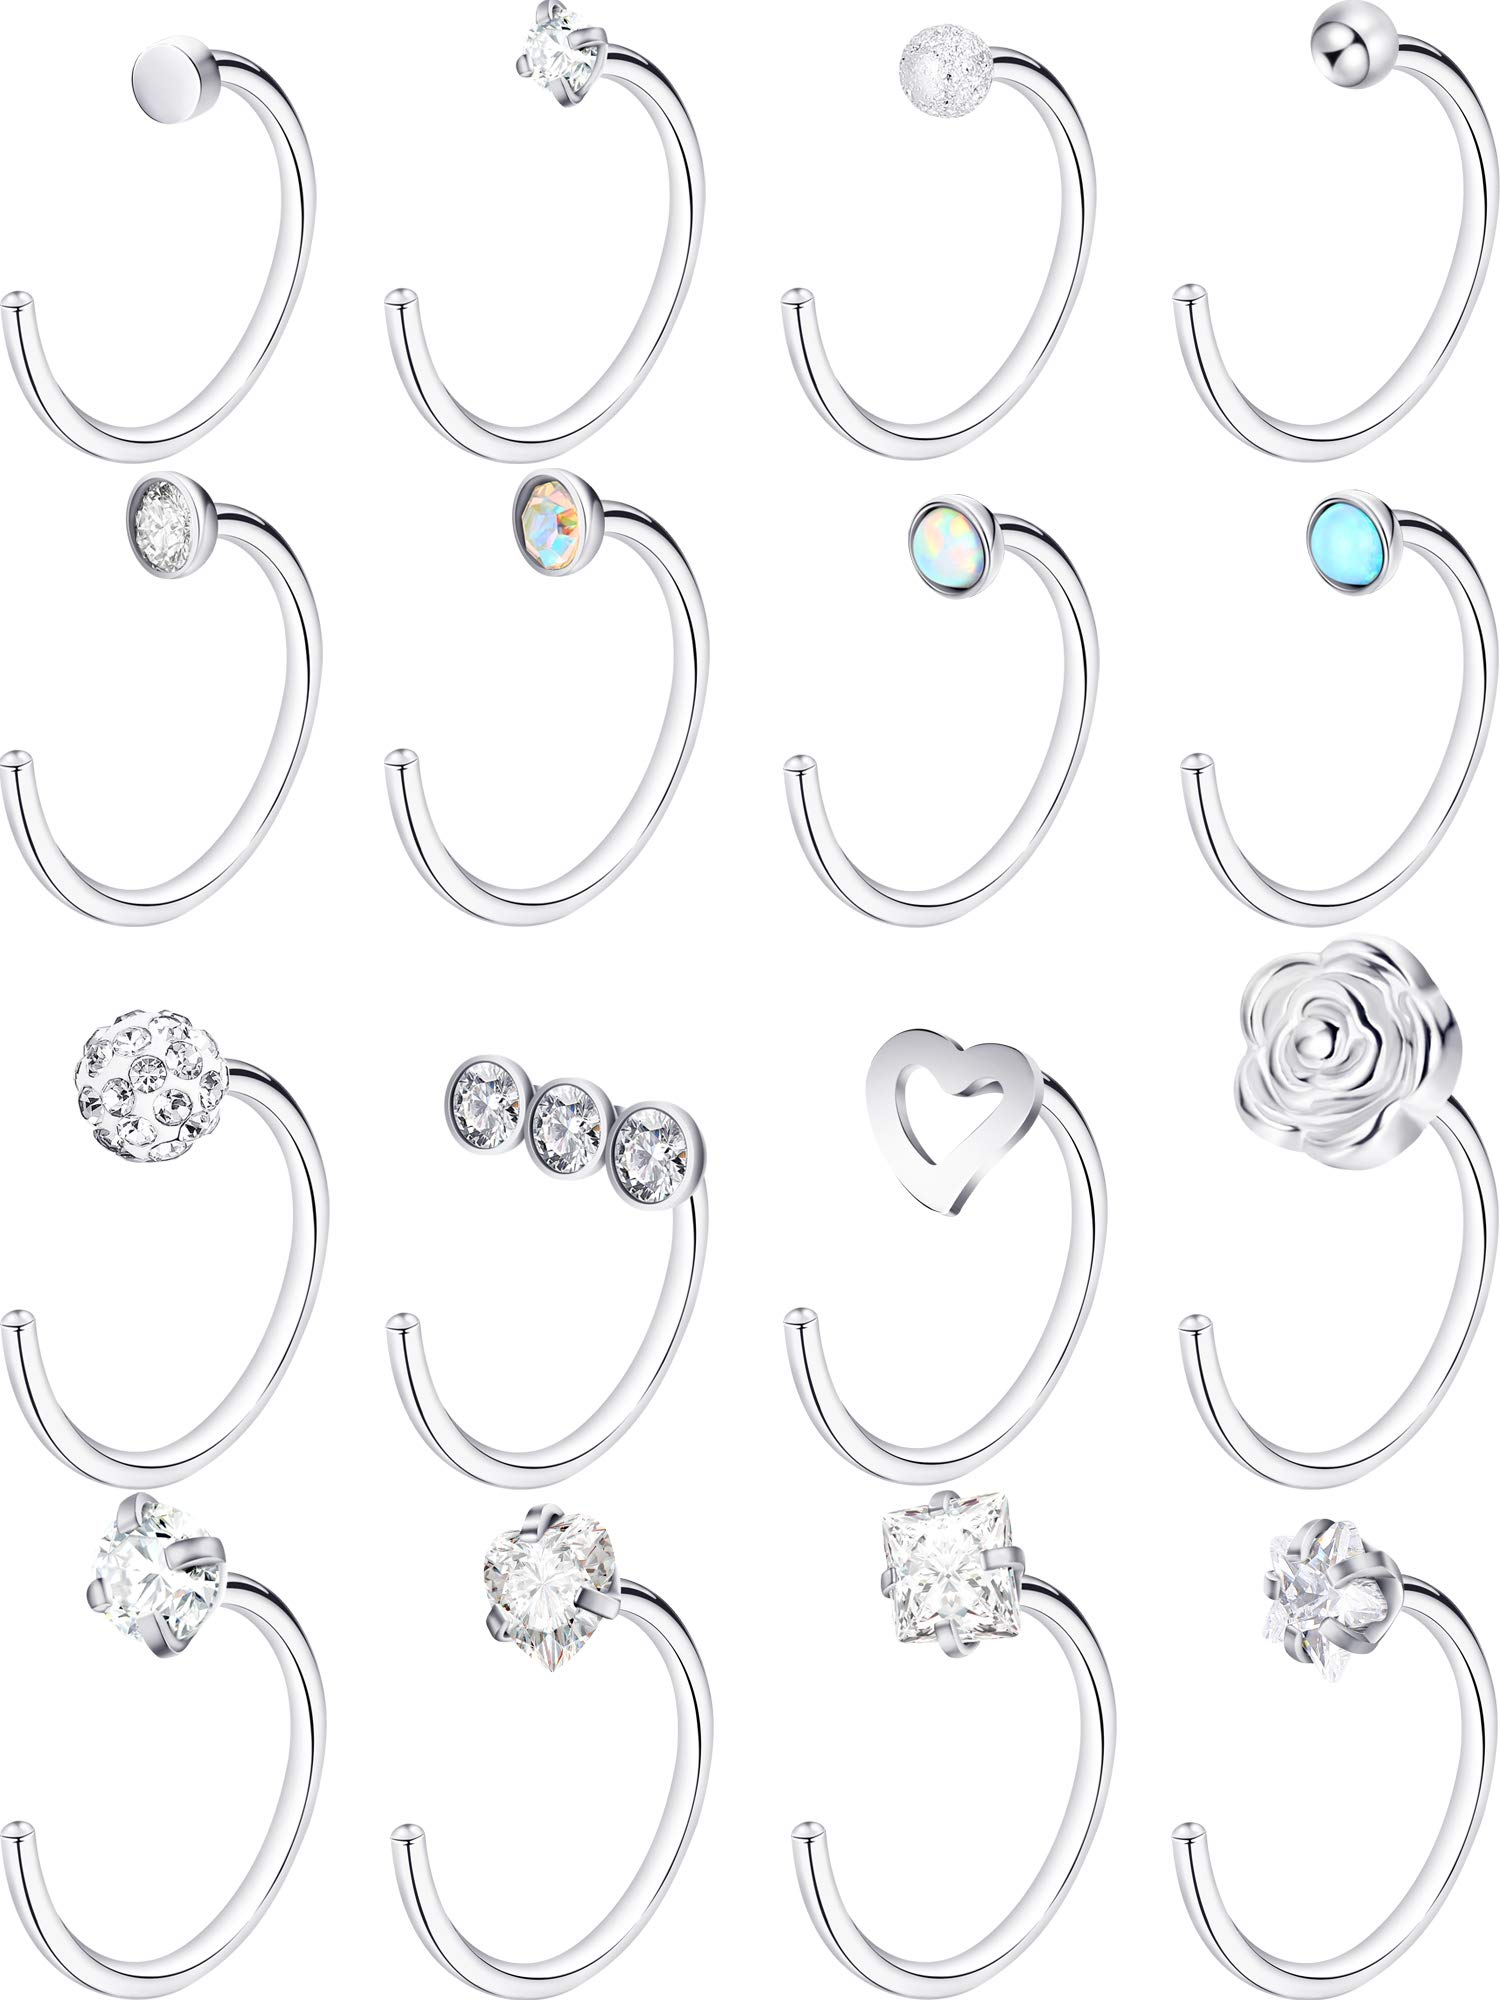 Jovitec Stainless Steel Nose Stud Set Steel Nose Ring Rose Ball Labret Body Piercing Jewelry for Party Wear or Clothes Matching, 20 G (16 Pieces, C Shape) by Jovitec